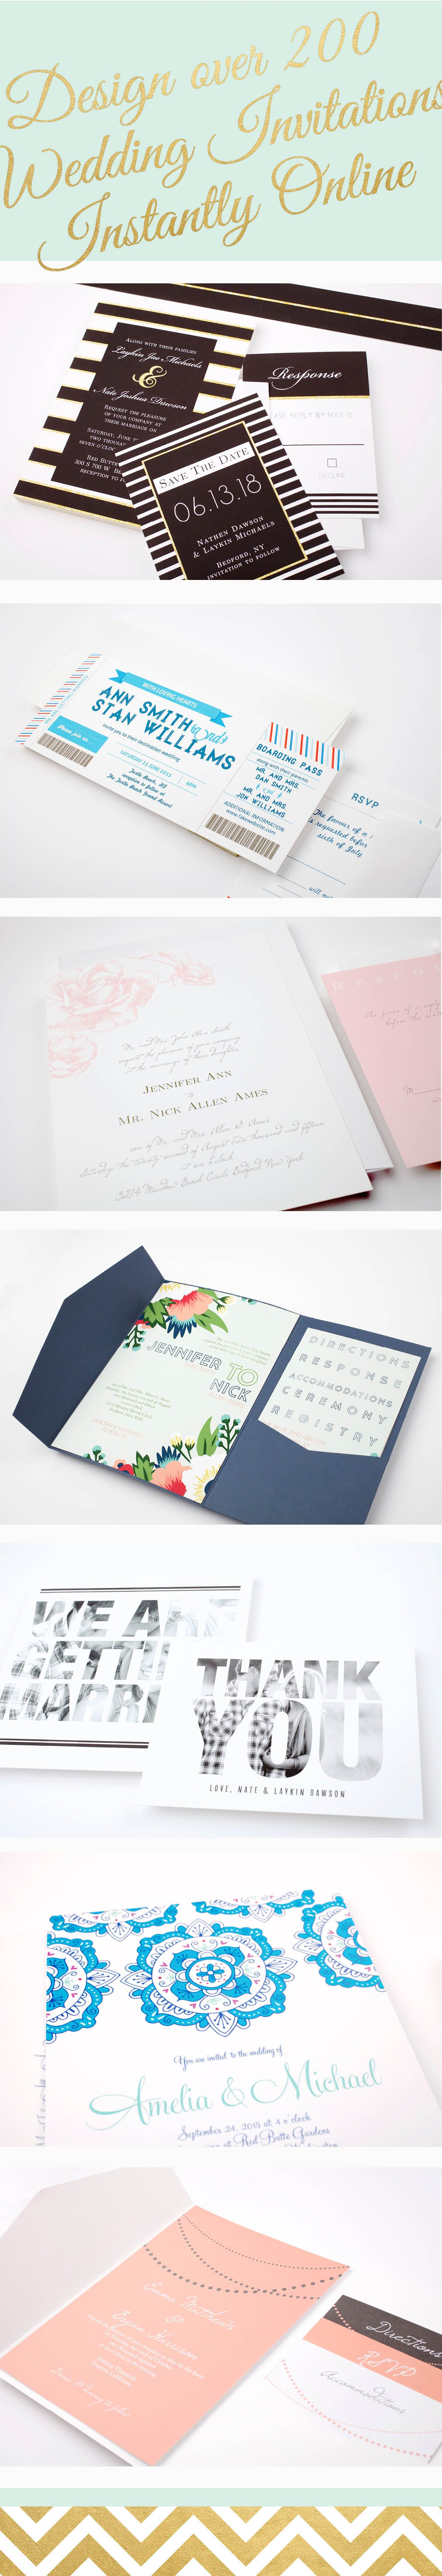 Full customizable wedding invitation sets in over 150 different ...